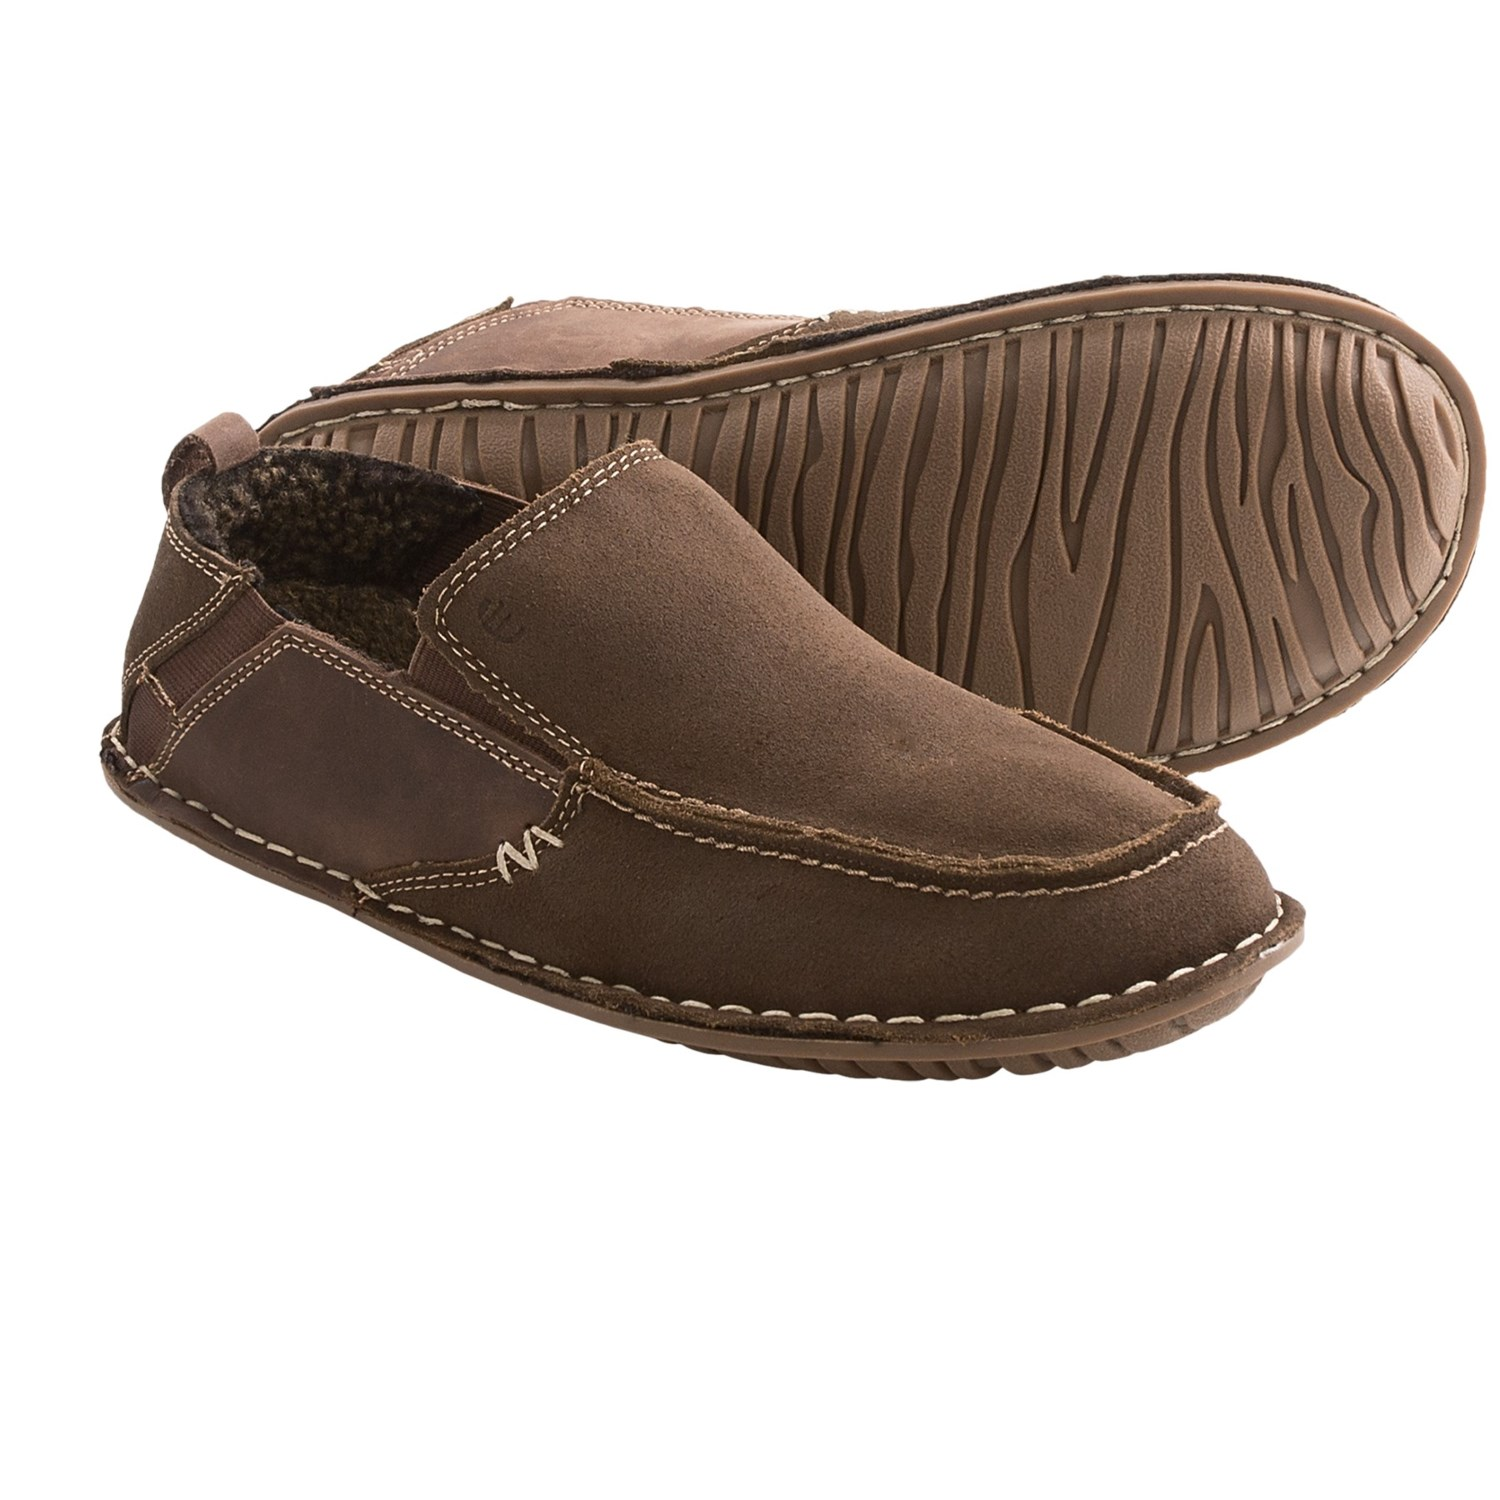 crevo marley slip on shoes fleece lined for save 50